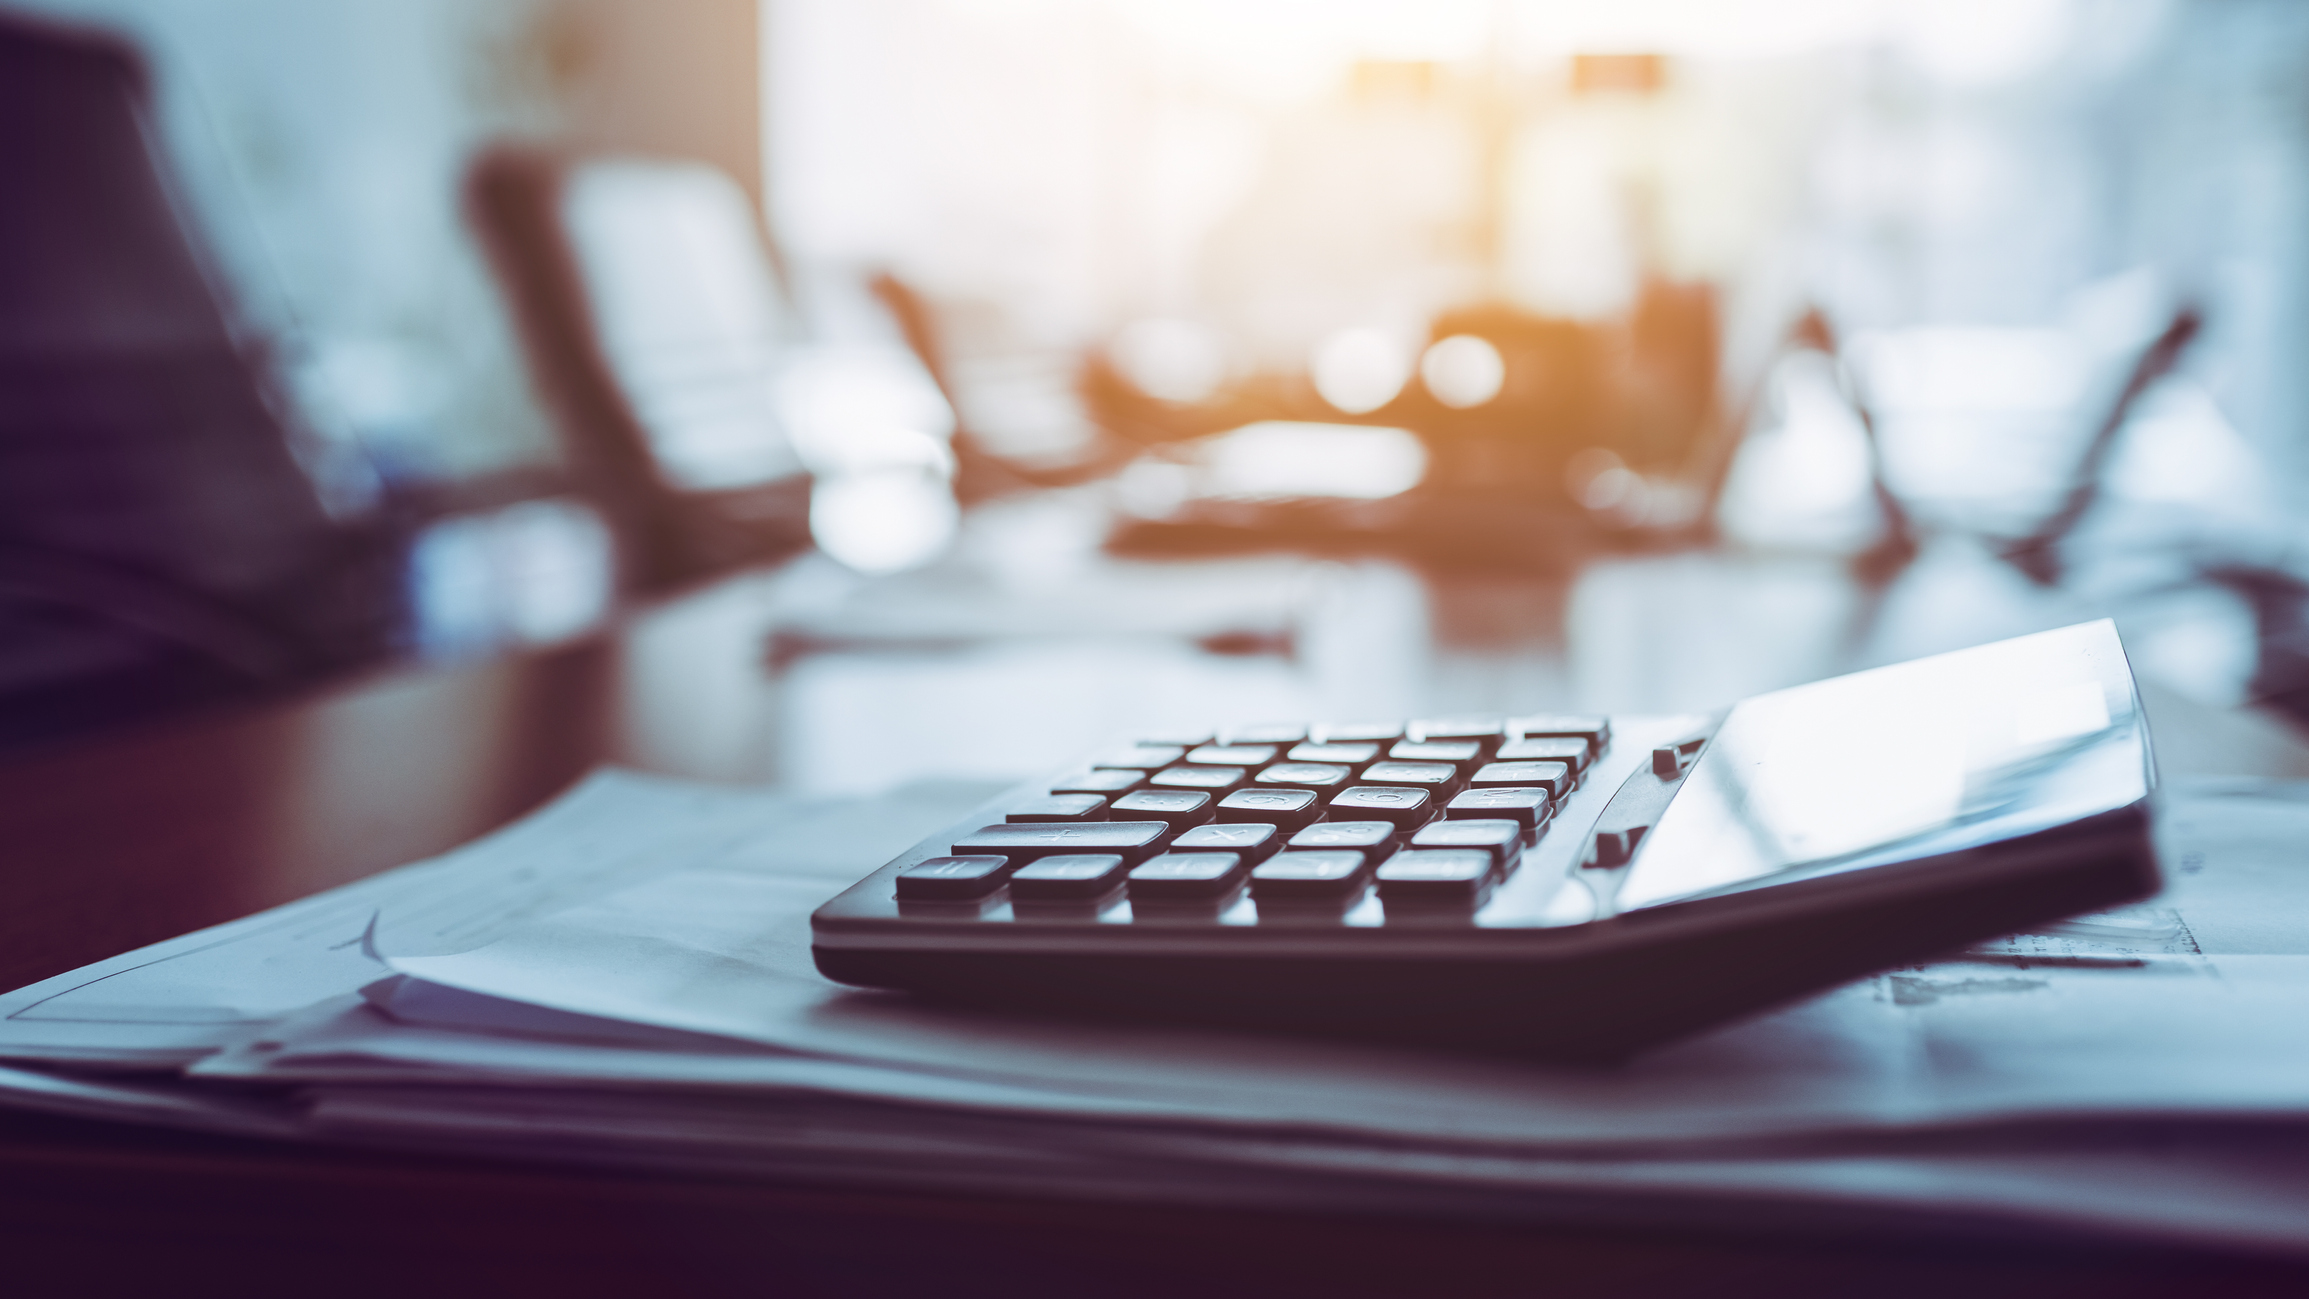 How to Connect Your Grant Funding to the Budgeting Process